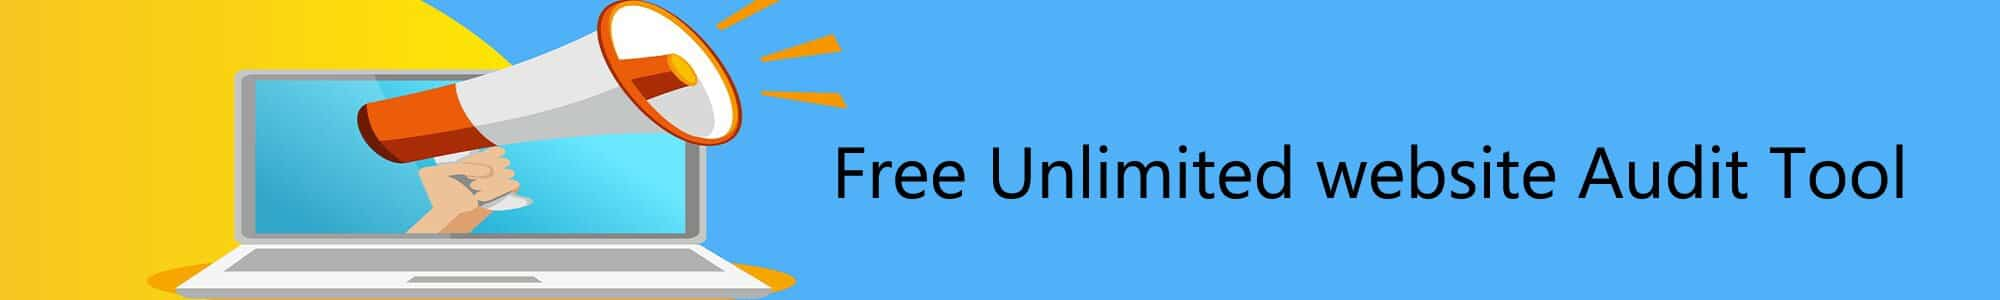 Unlimited free website Audit tool